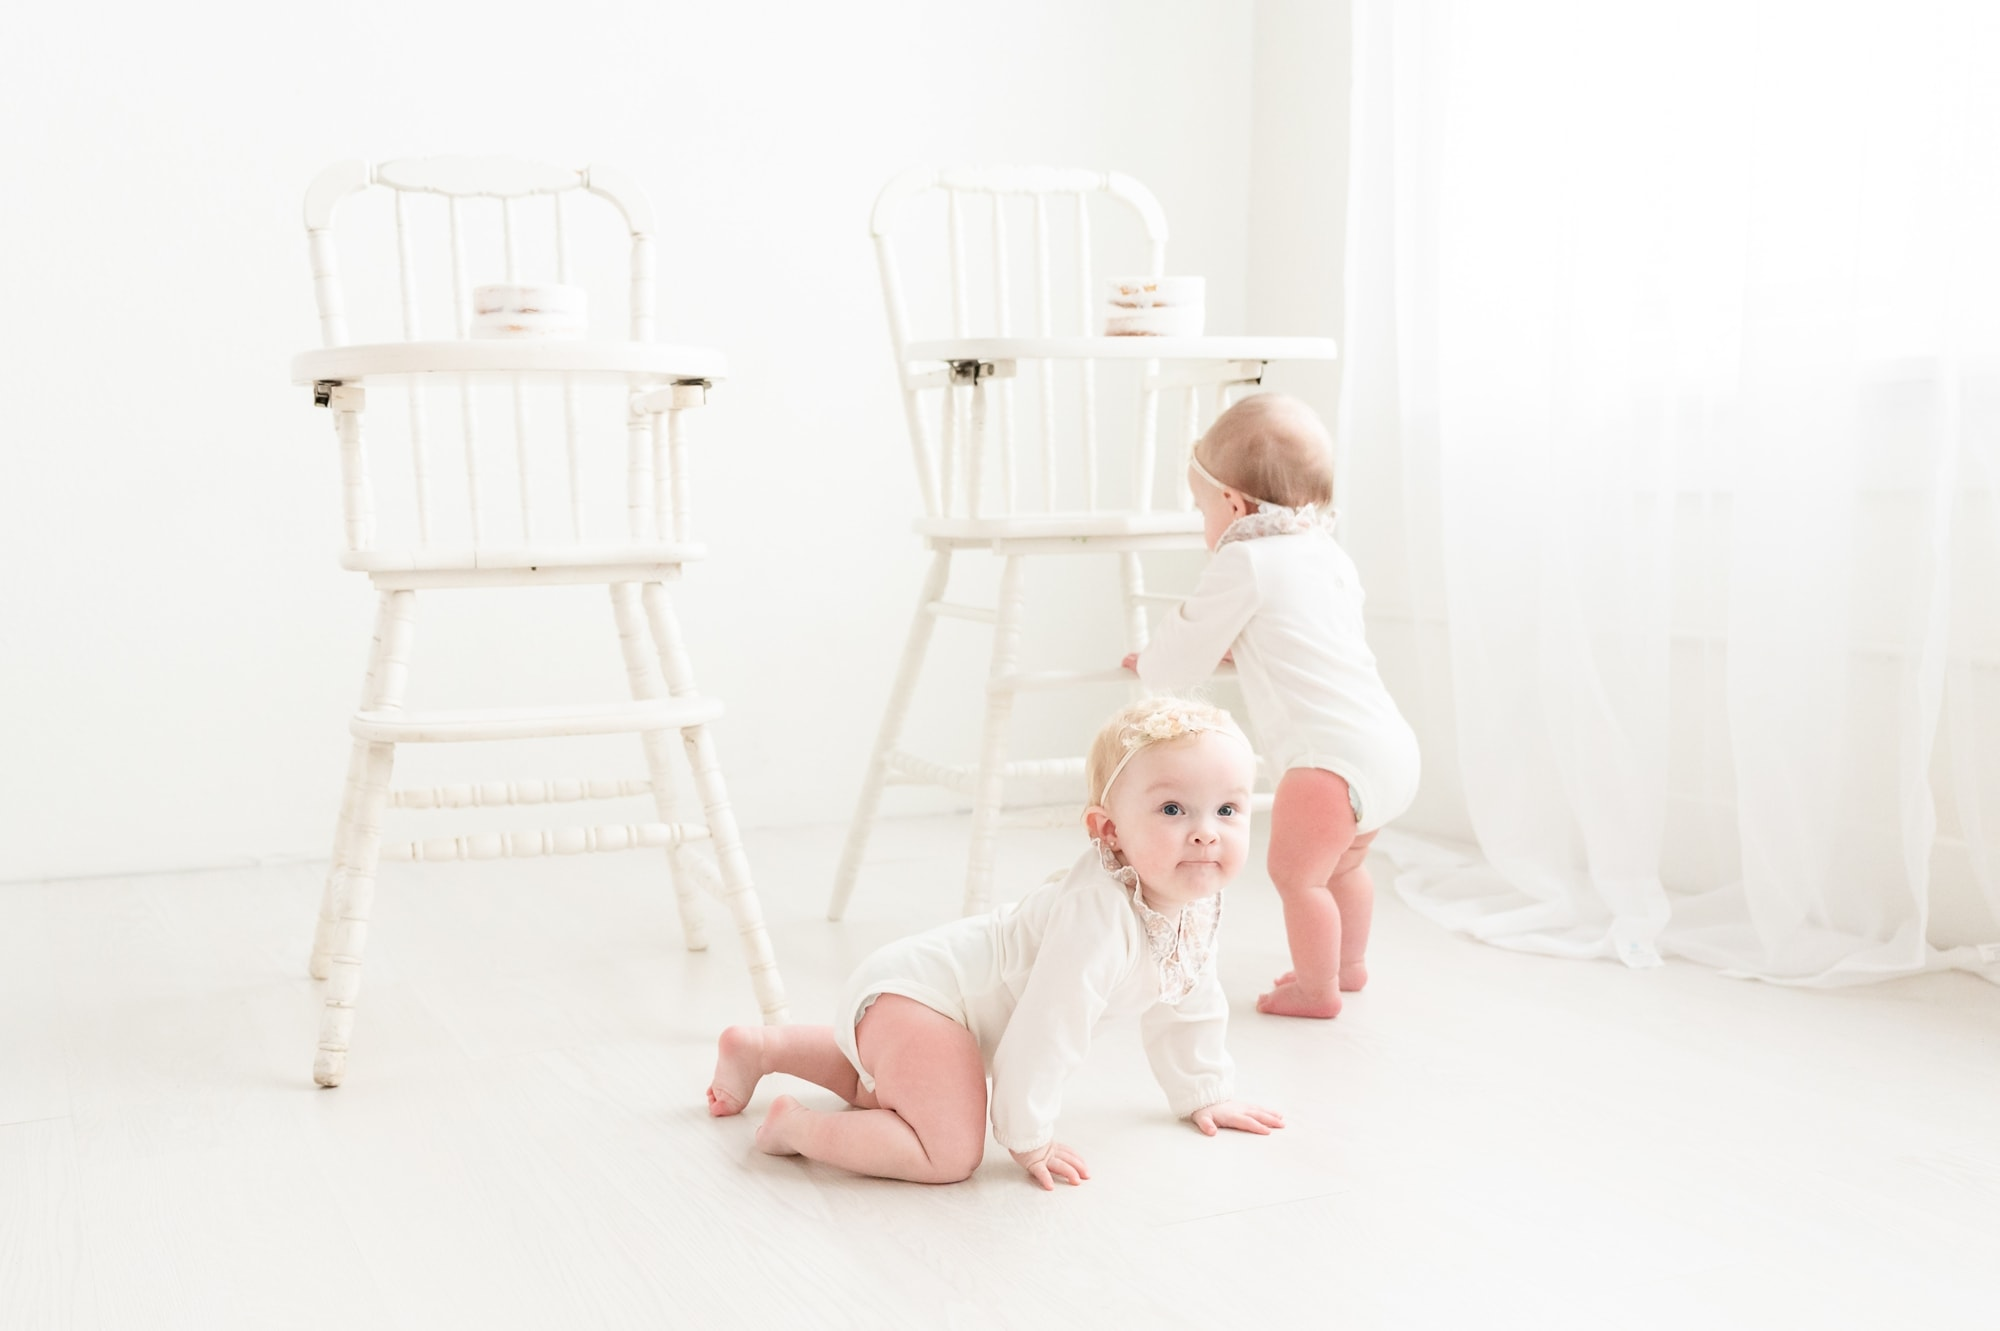 Cake smash session with two white highchairs for twins. Photo by Dallas studio baby photographer, Aimee Hamilton Photography.